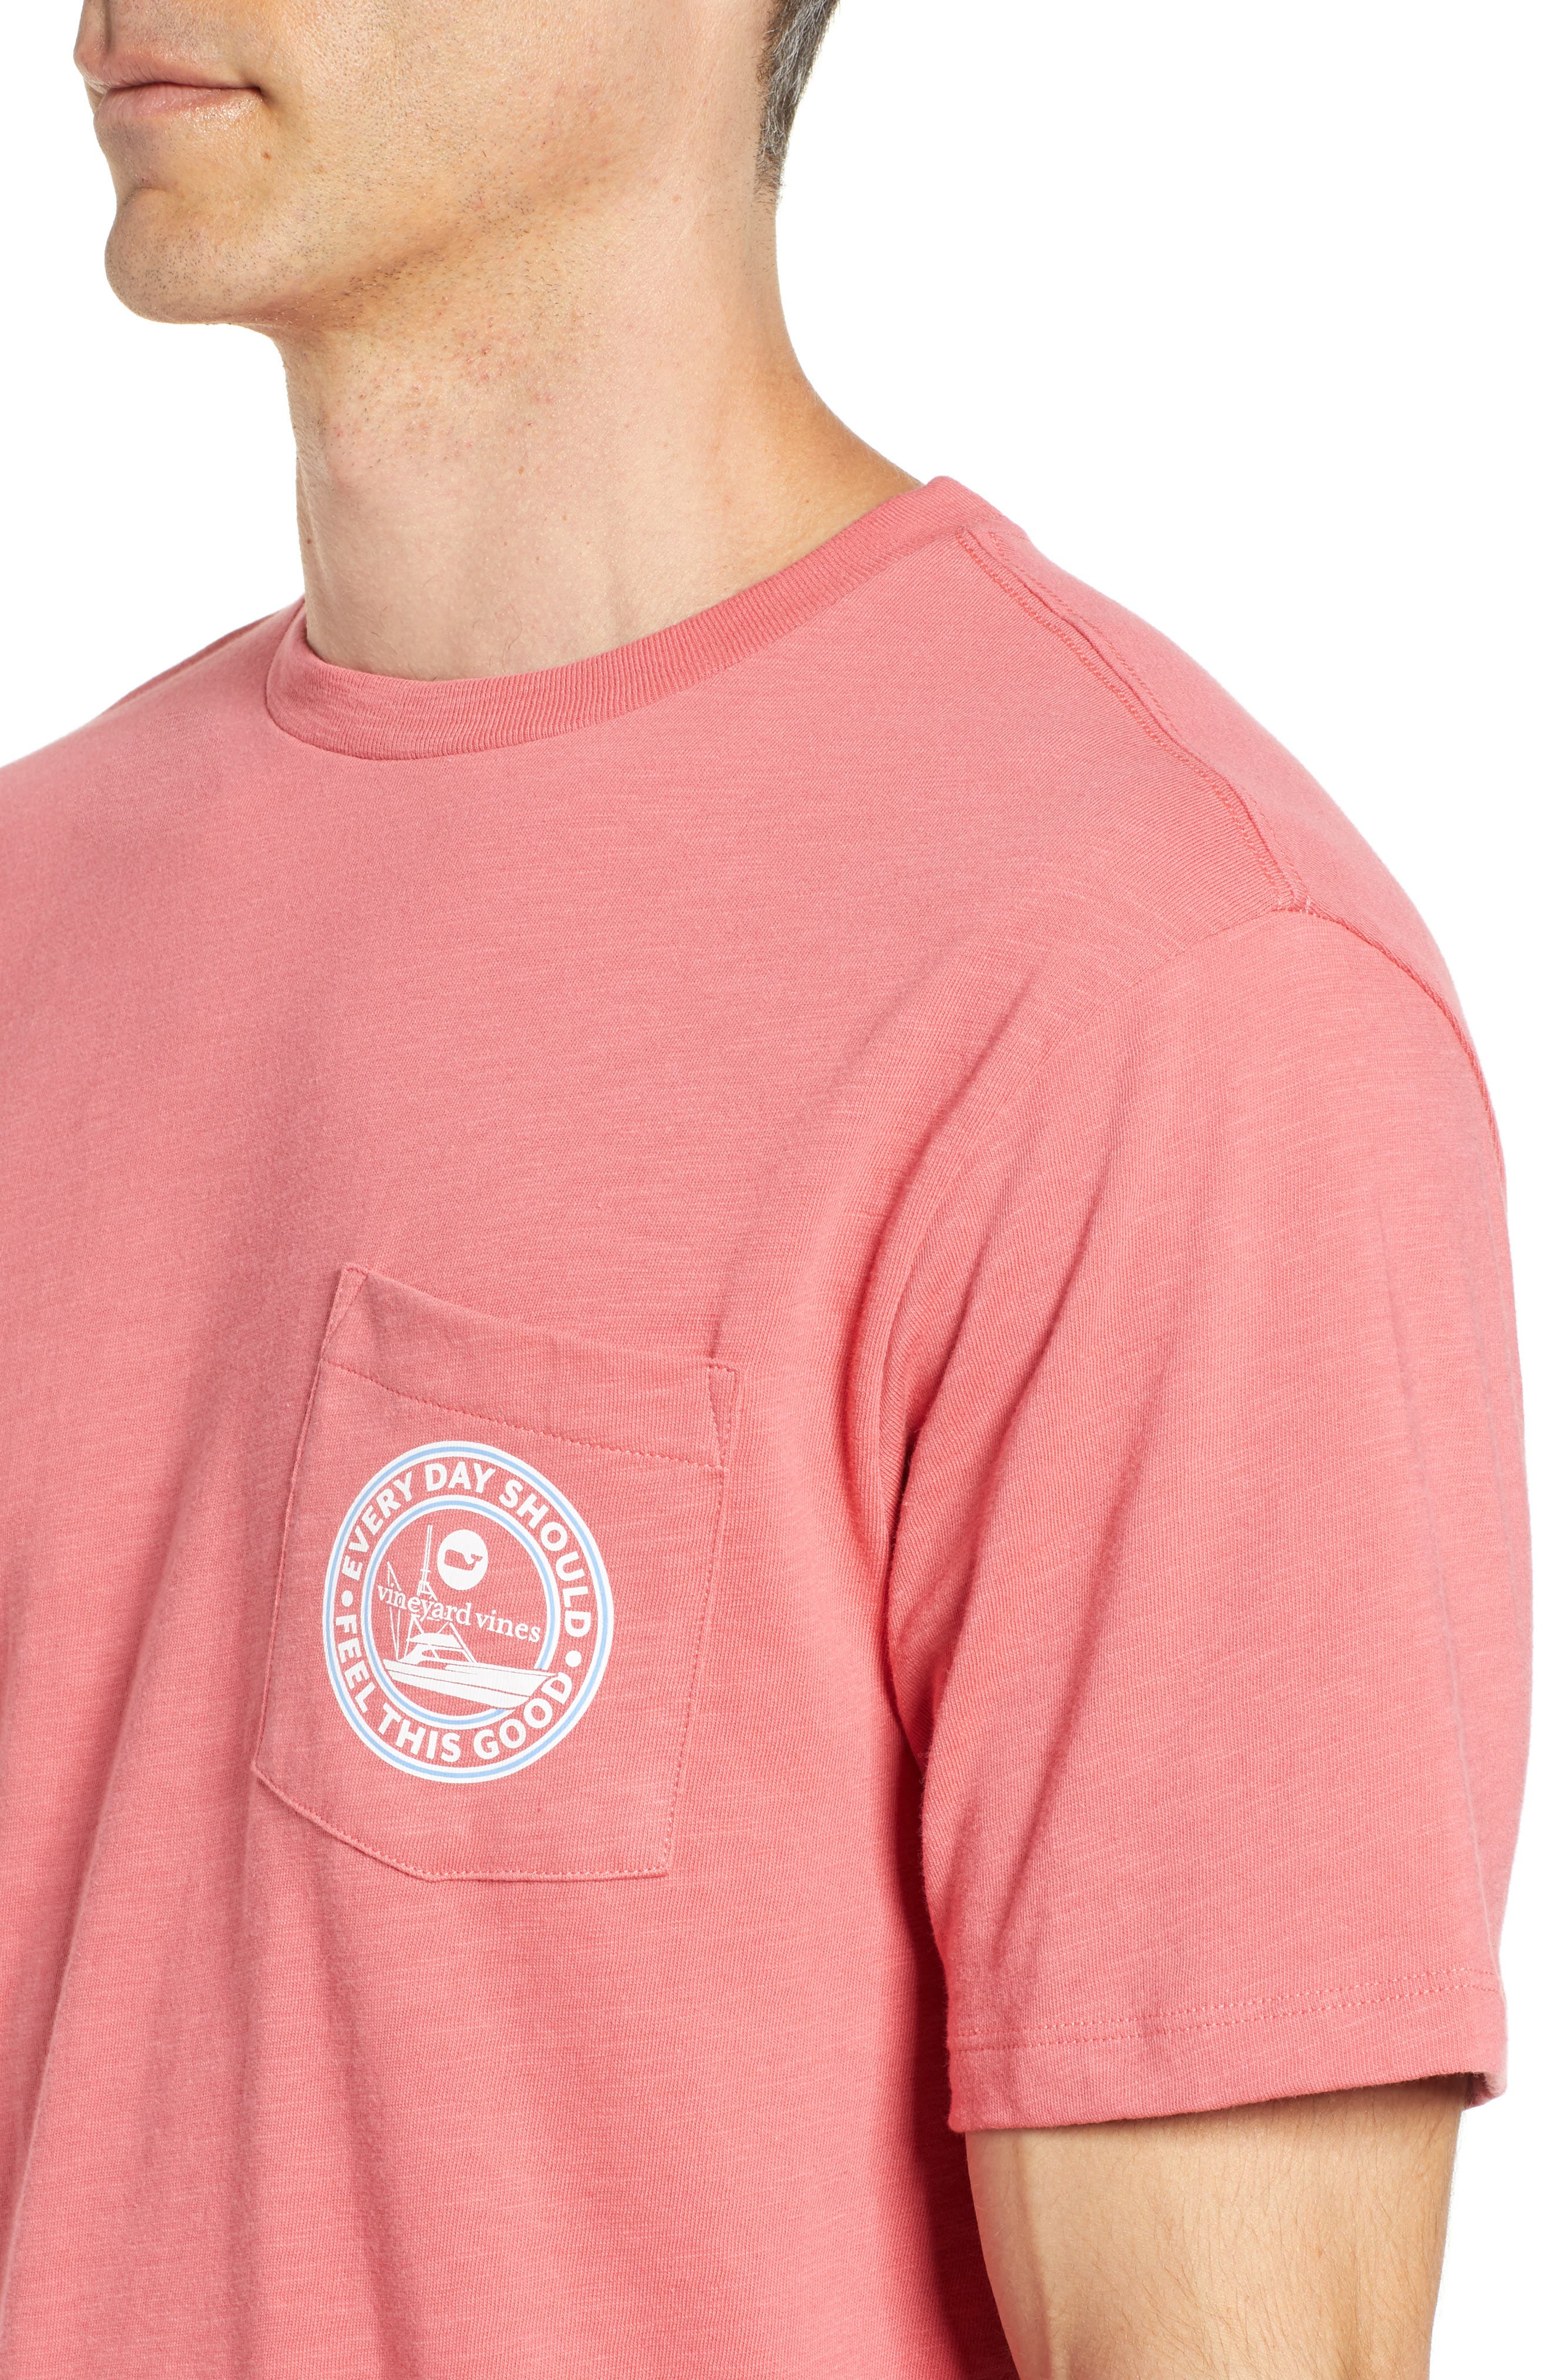 VINEYARD VINES,                             Every Day Should Feel This Good Pocket T-Shirt,                             Alternate thumbnail 4, color,                             628